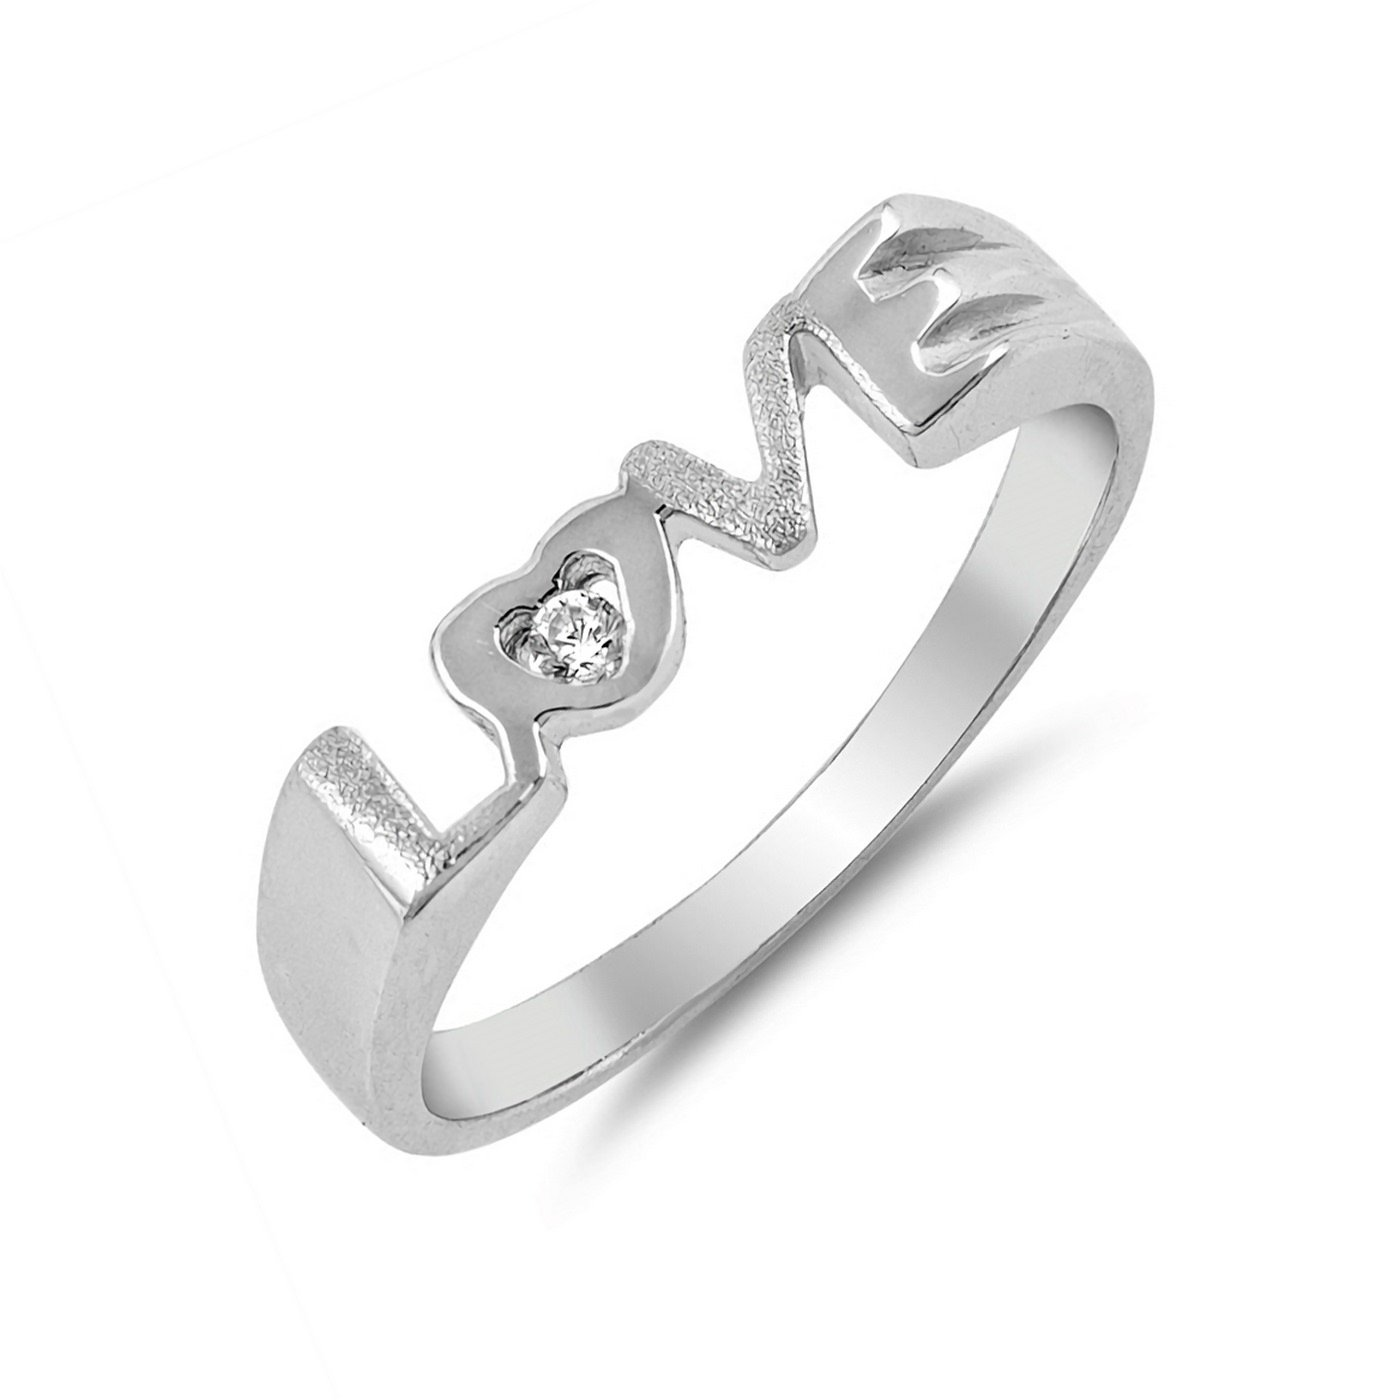 4mm Love Script Band Cubic Zirconia Womens 925 Sterling Silver Ring Size 8